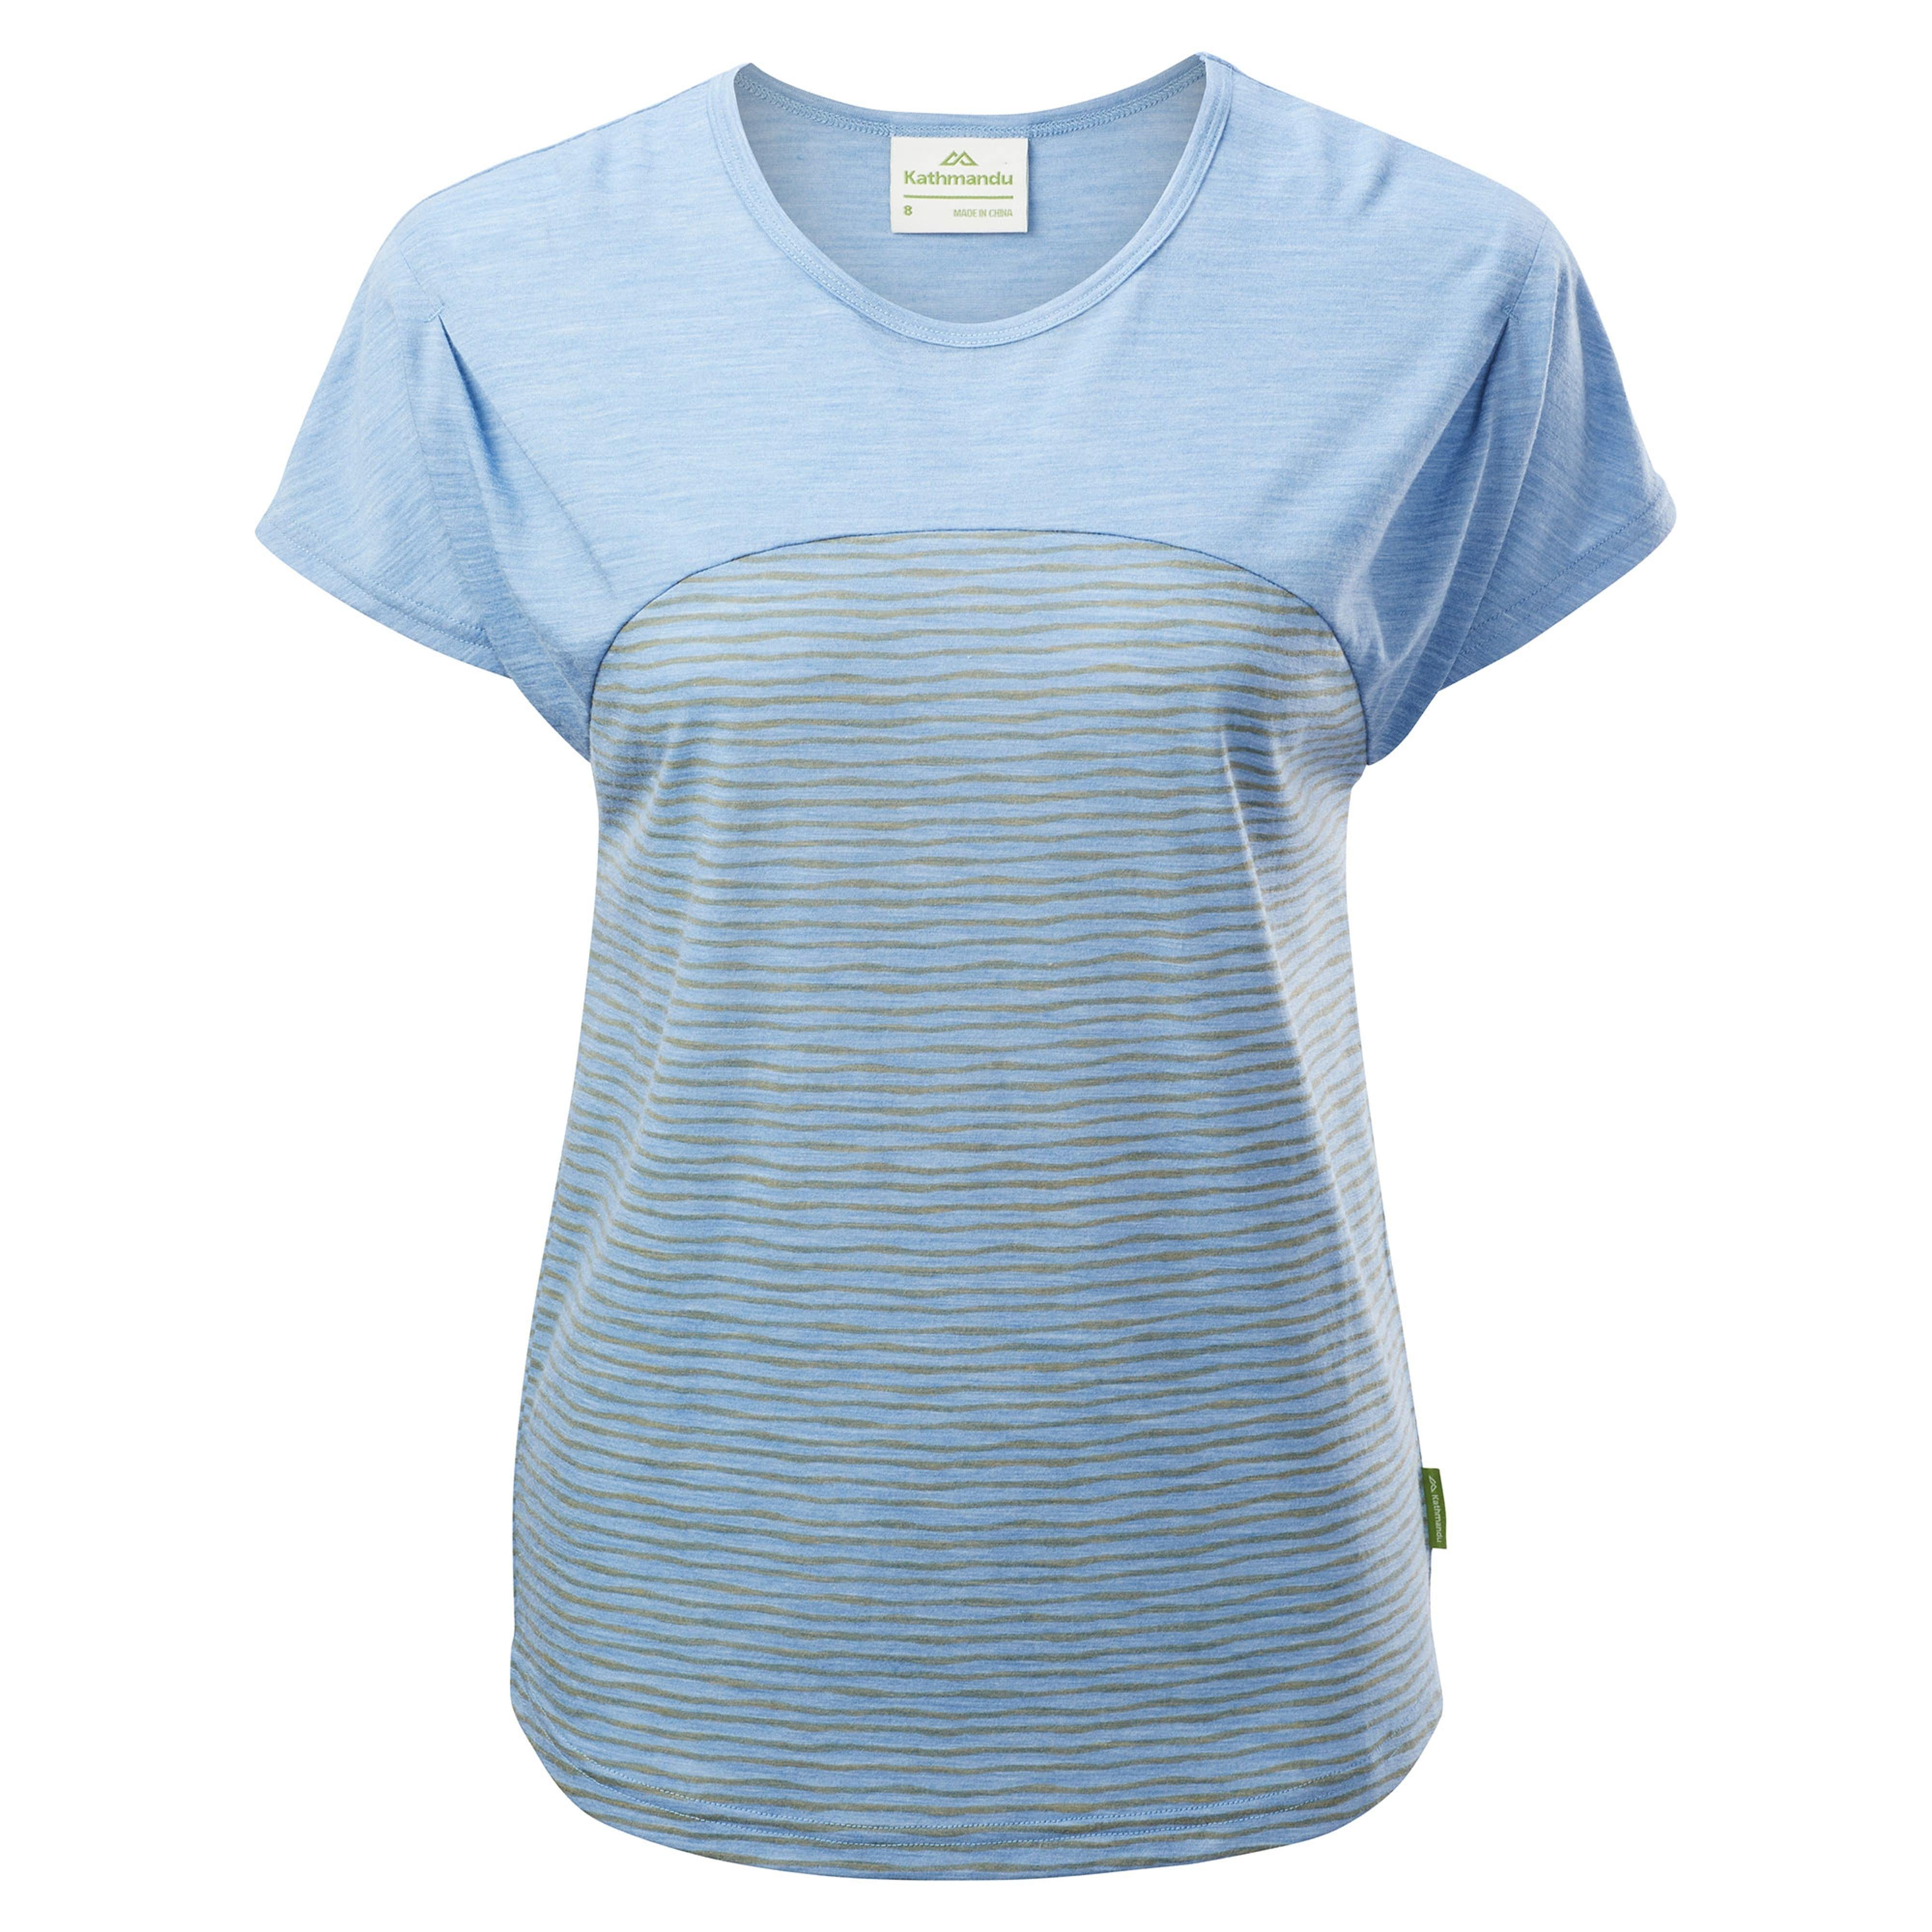 2c822481 Navua Women's Merino Blend Top